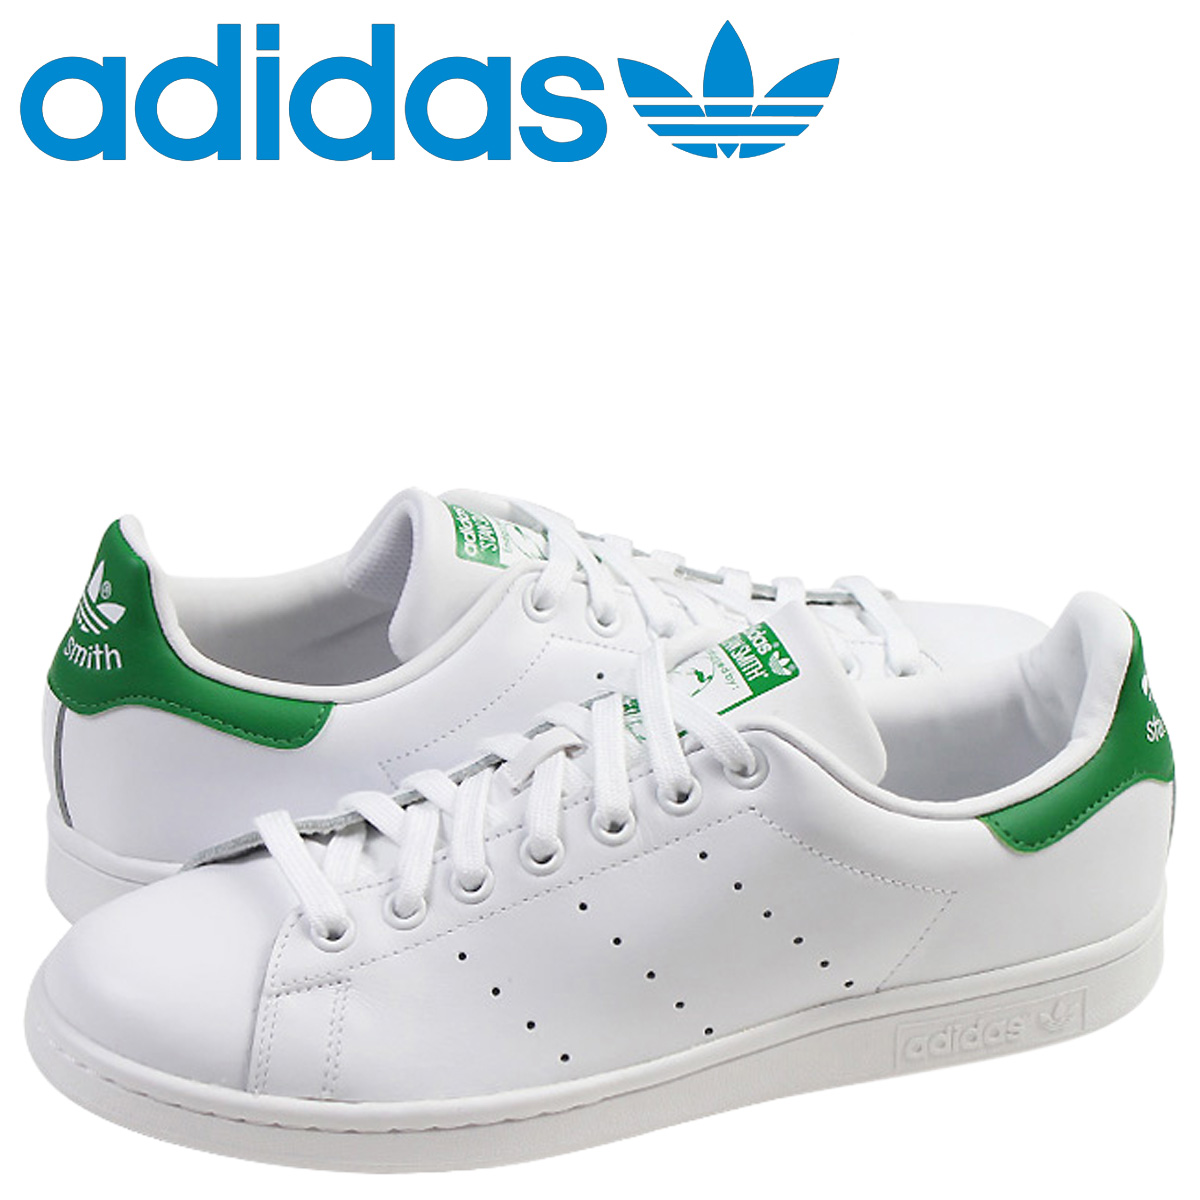 ALLSPORTS | Rakuten Global Market: [SOLD OUT] adidas originals adidas  Originals STAN SMITH sneakers Stan Smith leather men's women's M20324 white  green ...